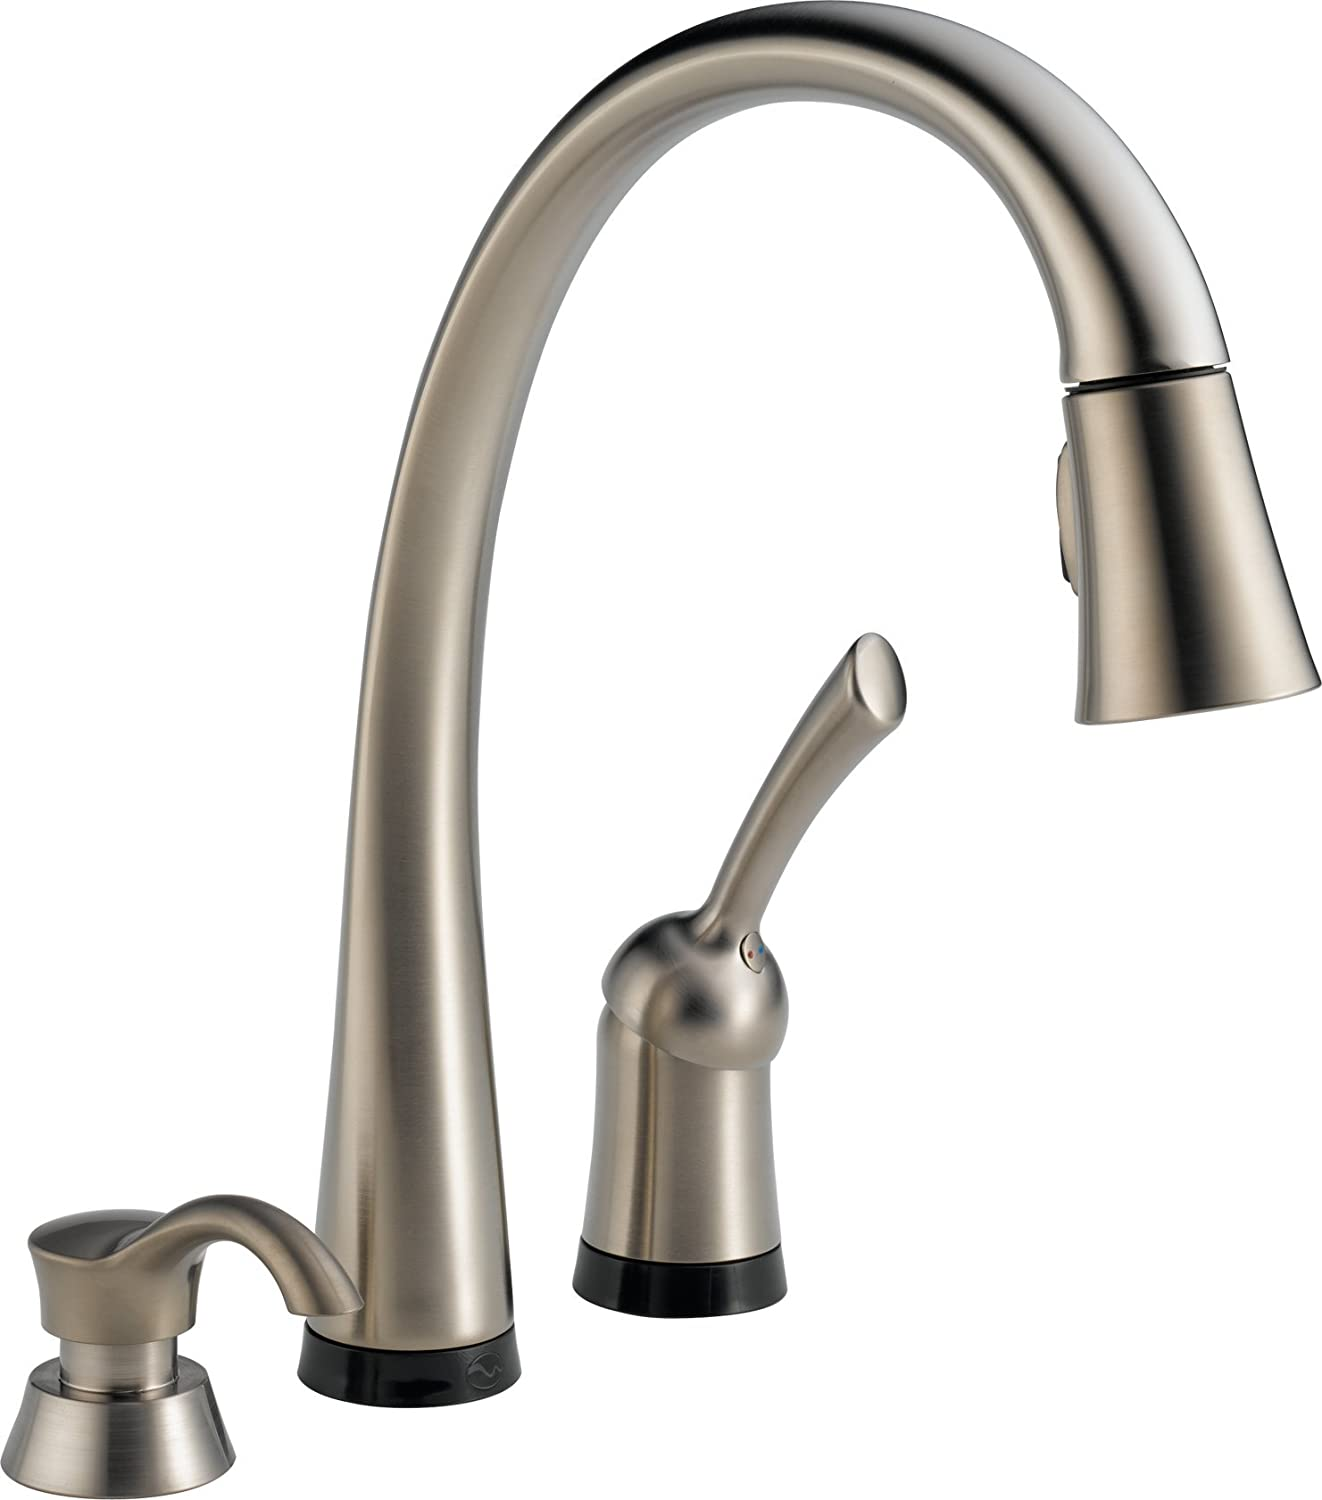 Delta 980T best pull down kitchen faucet